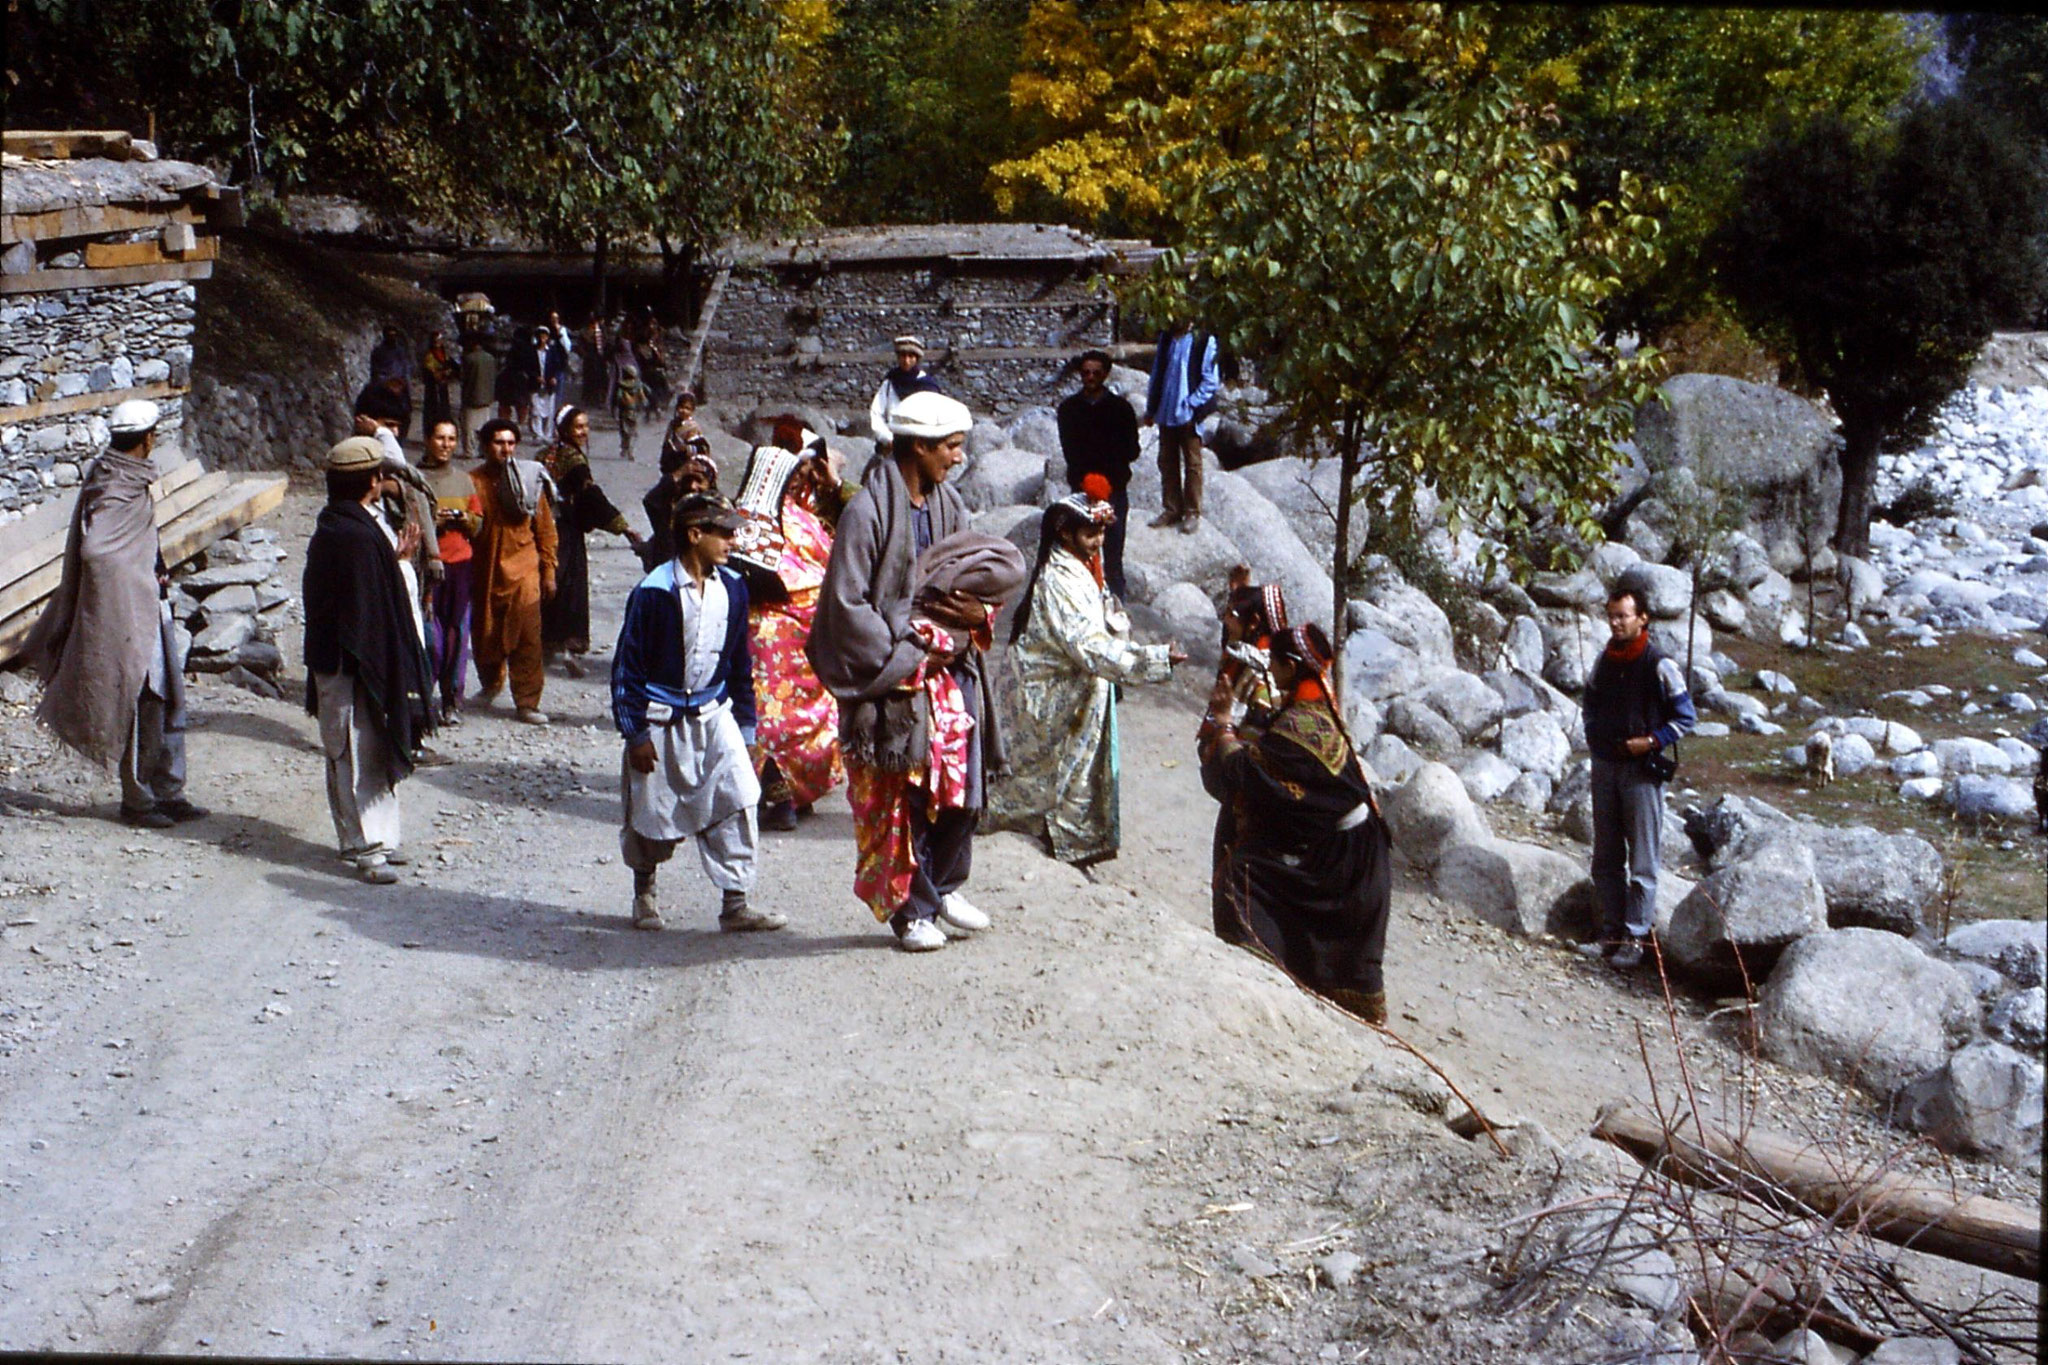 1/11/1989: 2: Kalash Valley, Bumburet, bridal procession